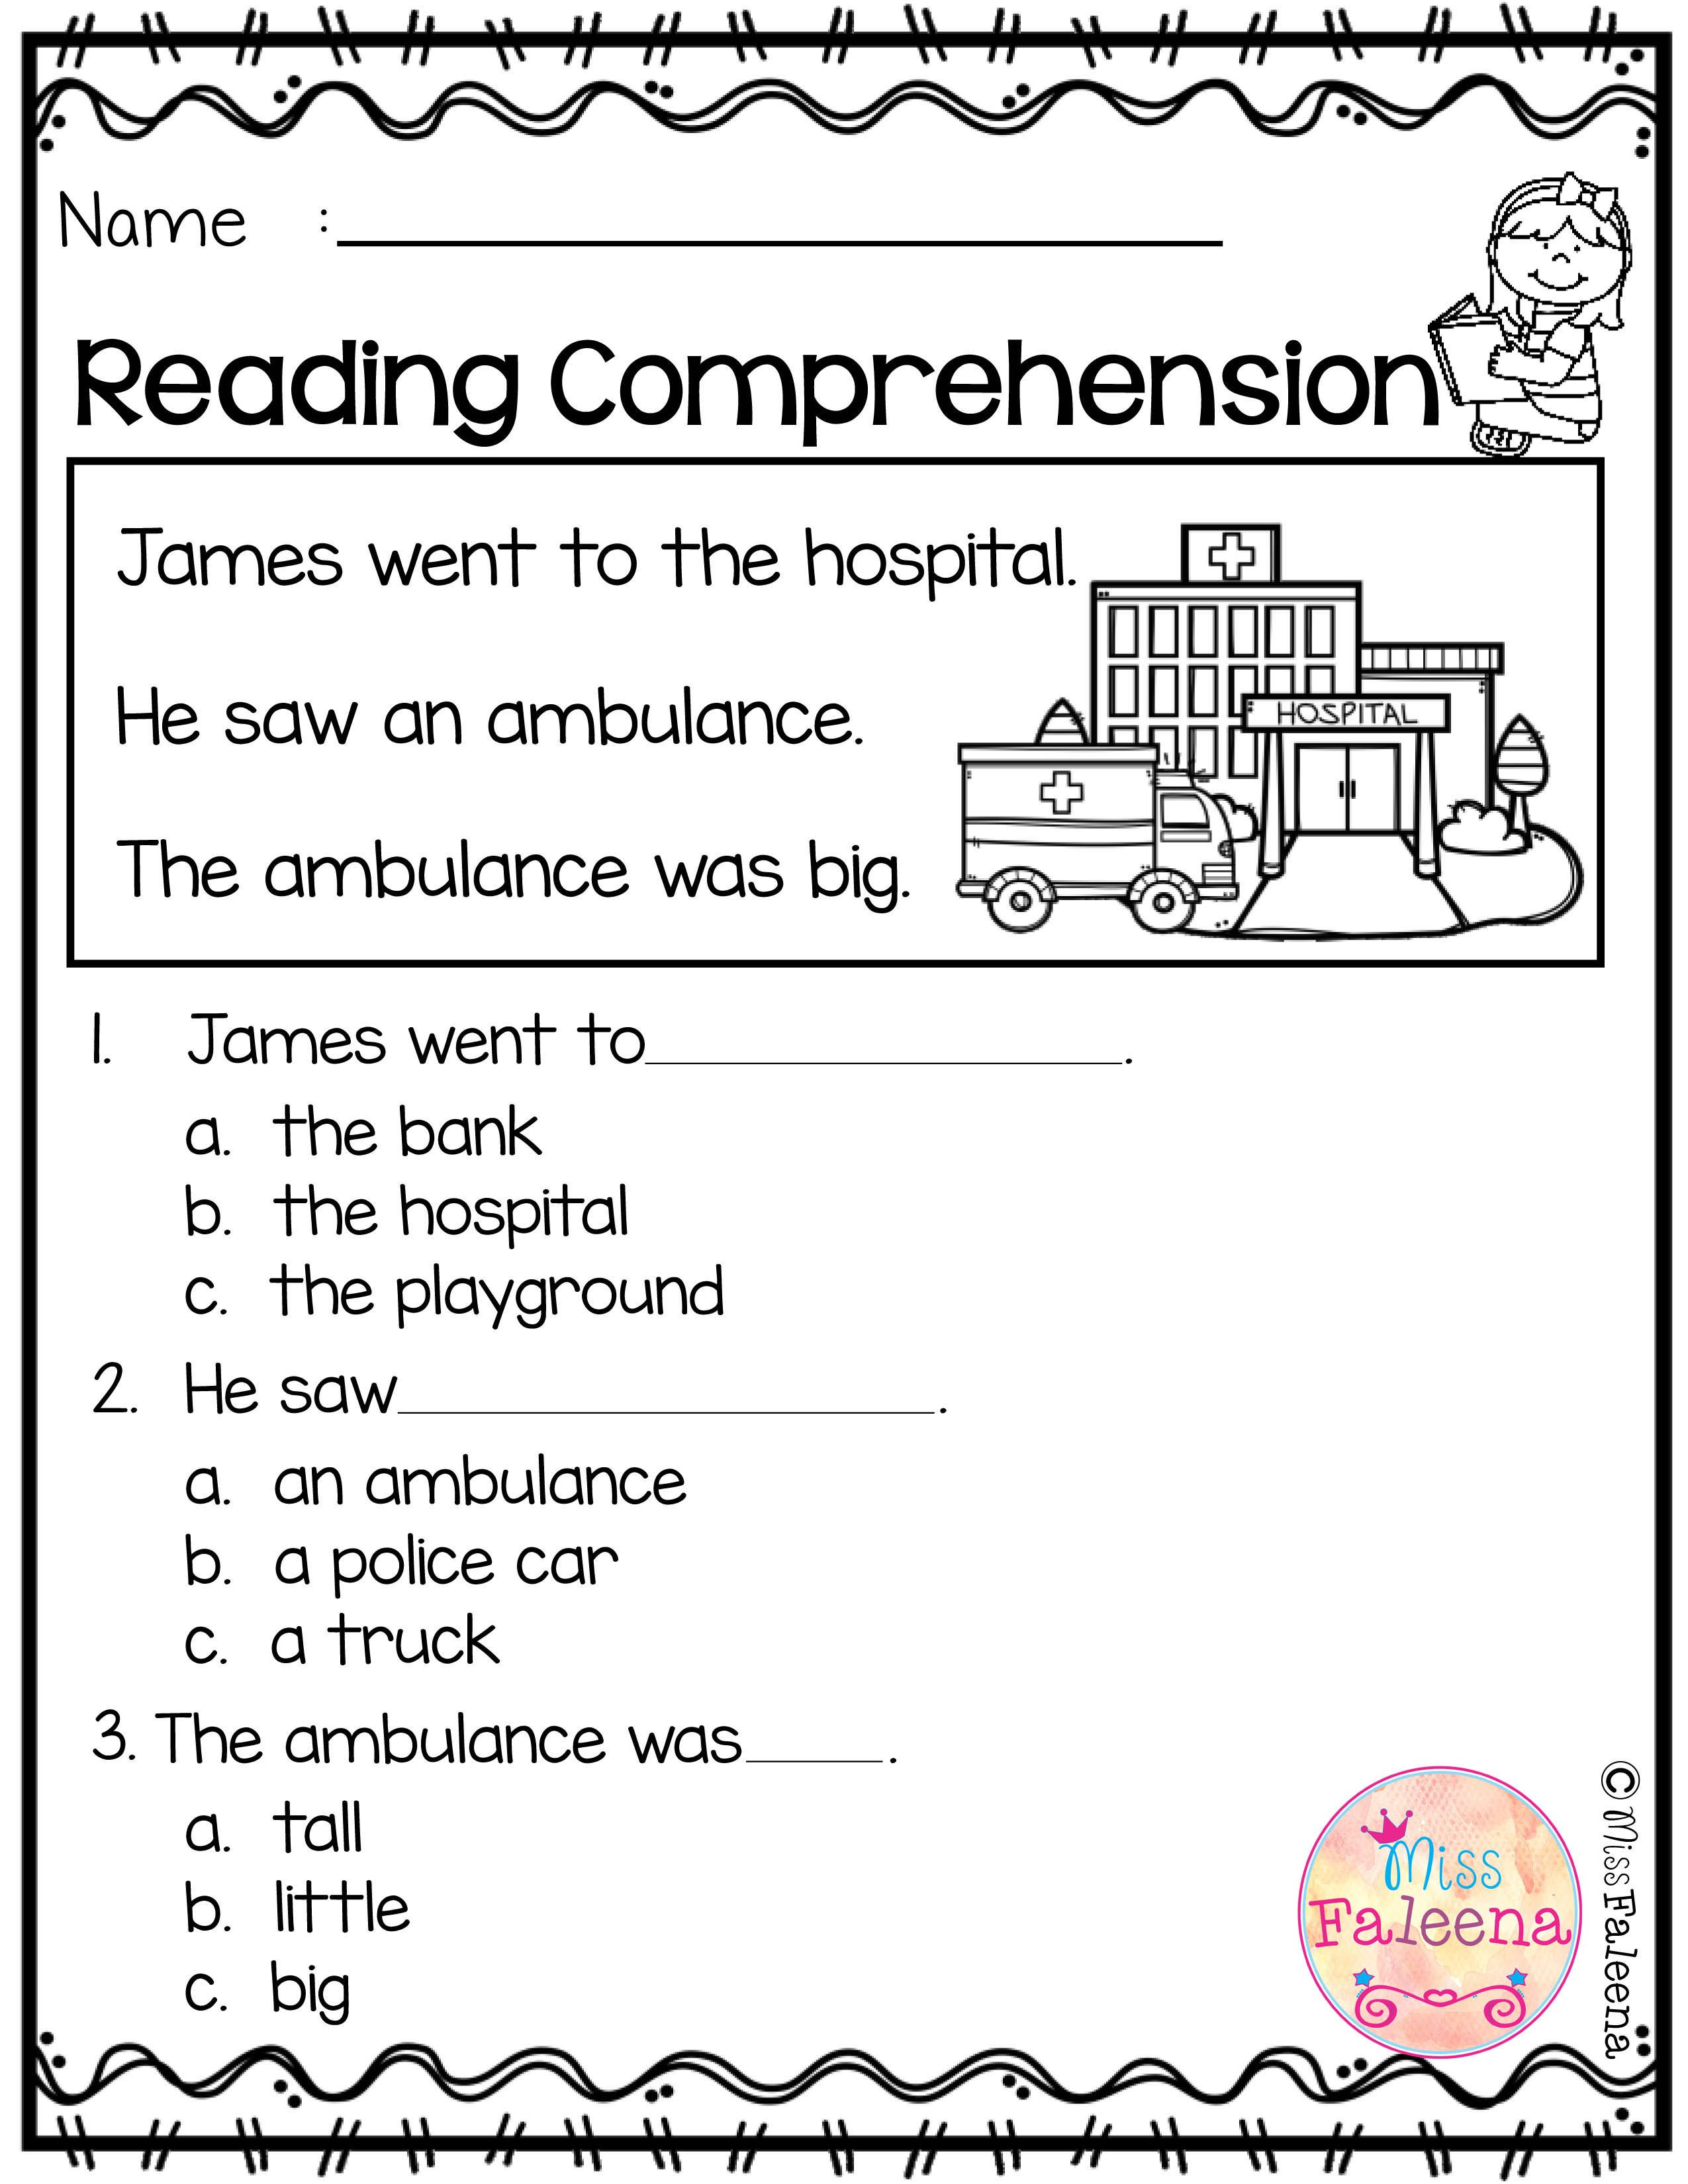 hight resolution of https://dubaikhalifas.com/reading-comprehension-passages-questions-first-grade-kinder-bundle-in-2020-with-images/